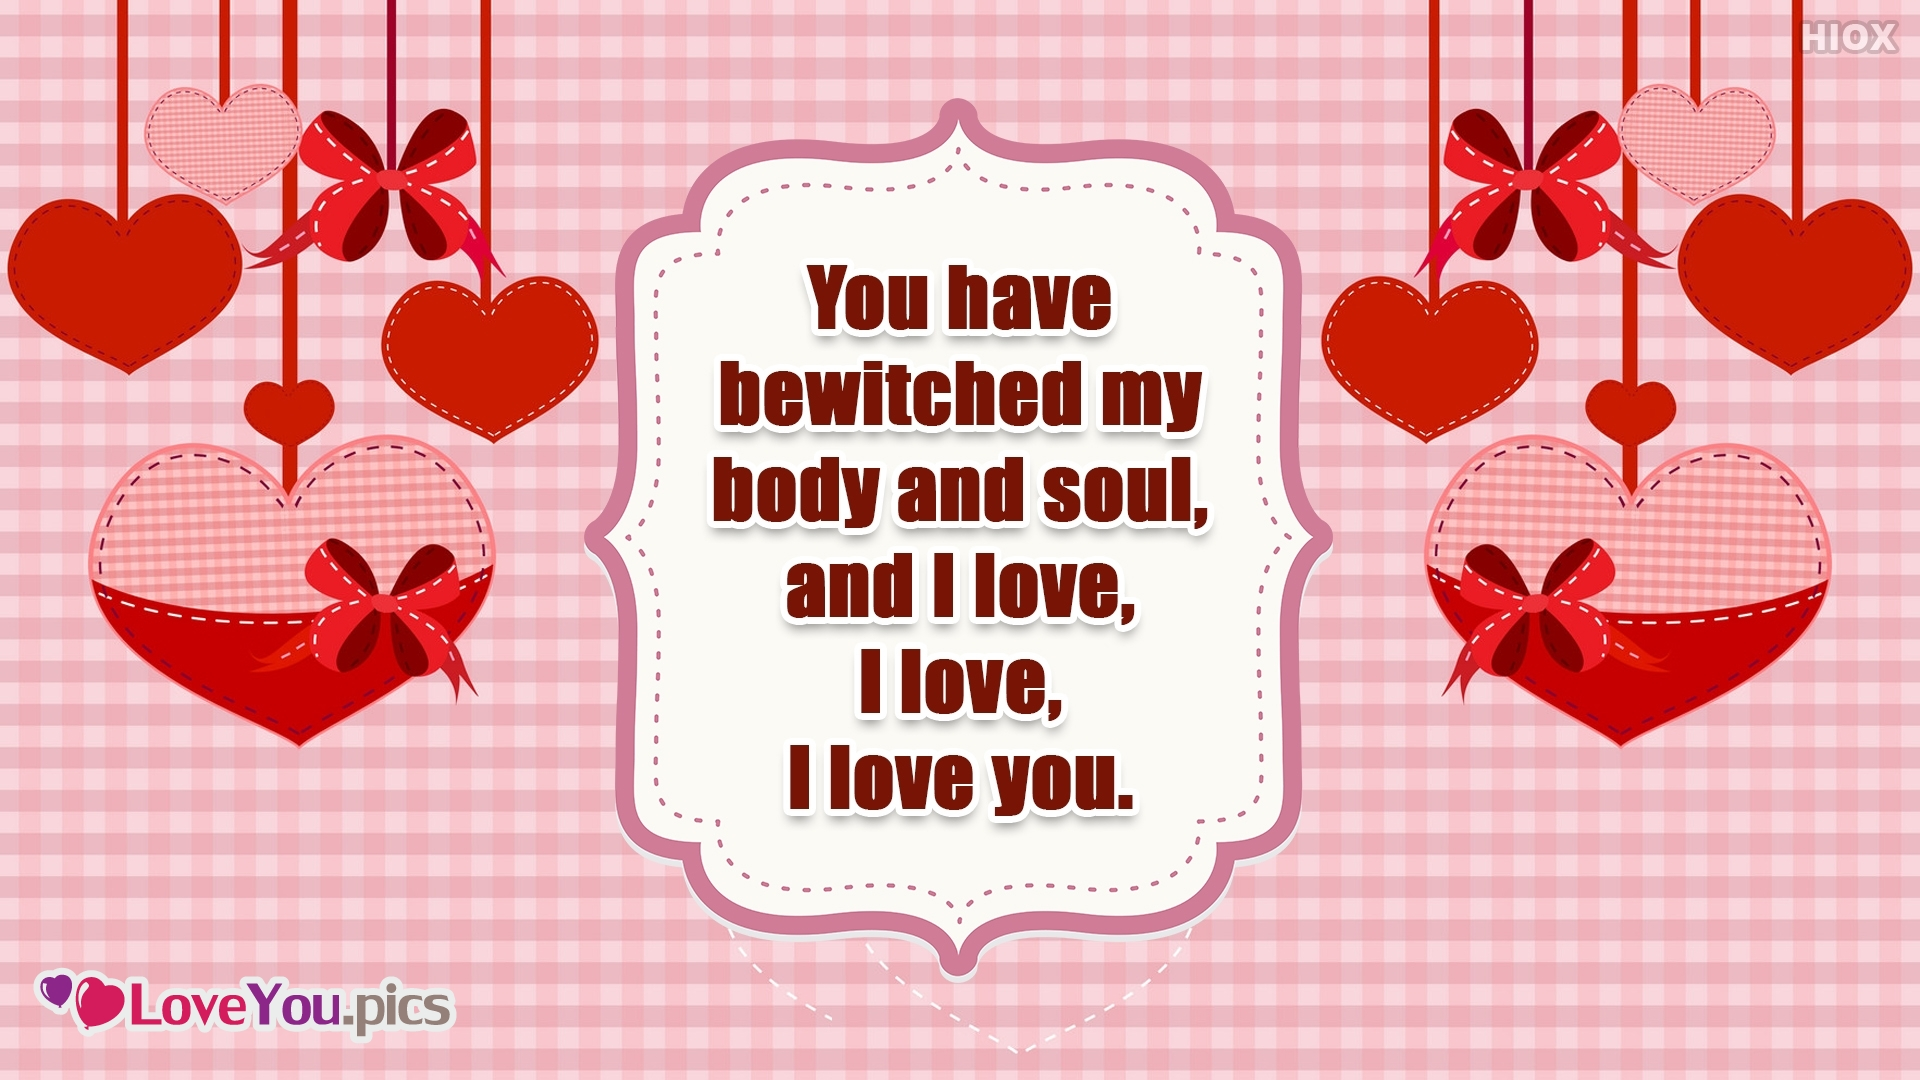 You Have Bewitched Me Body and Soul, and I Love, I Love, I Love You.